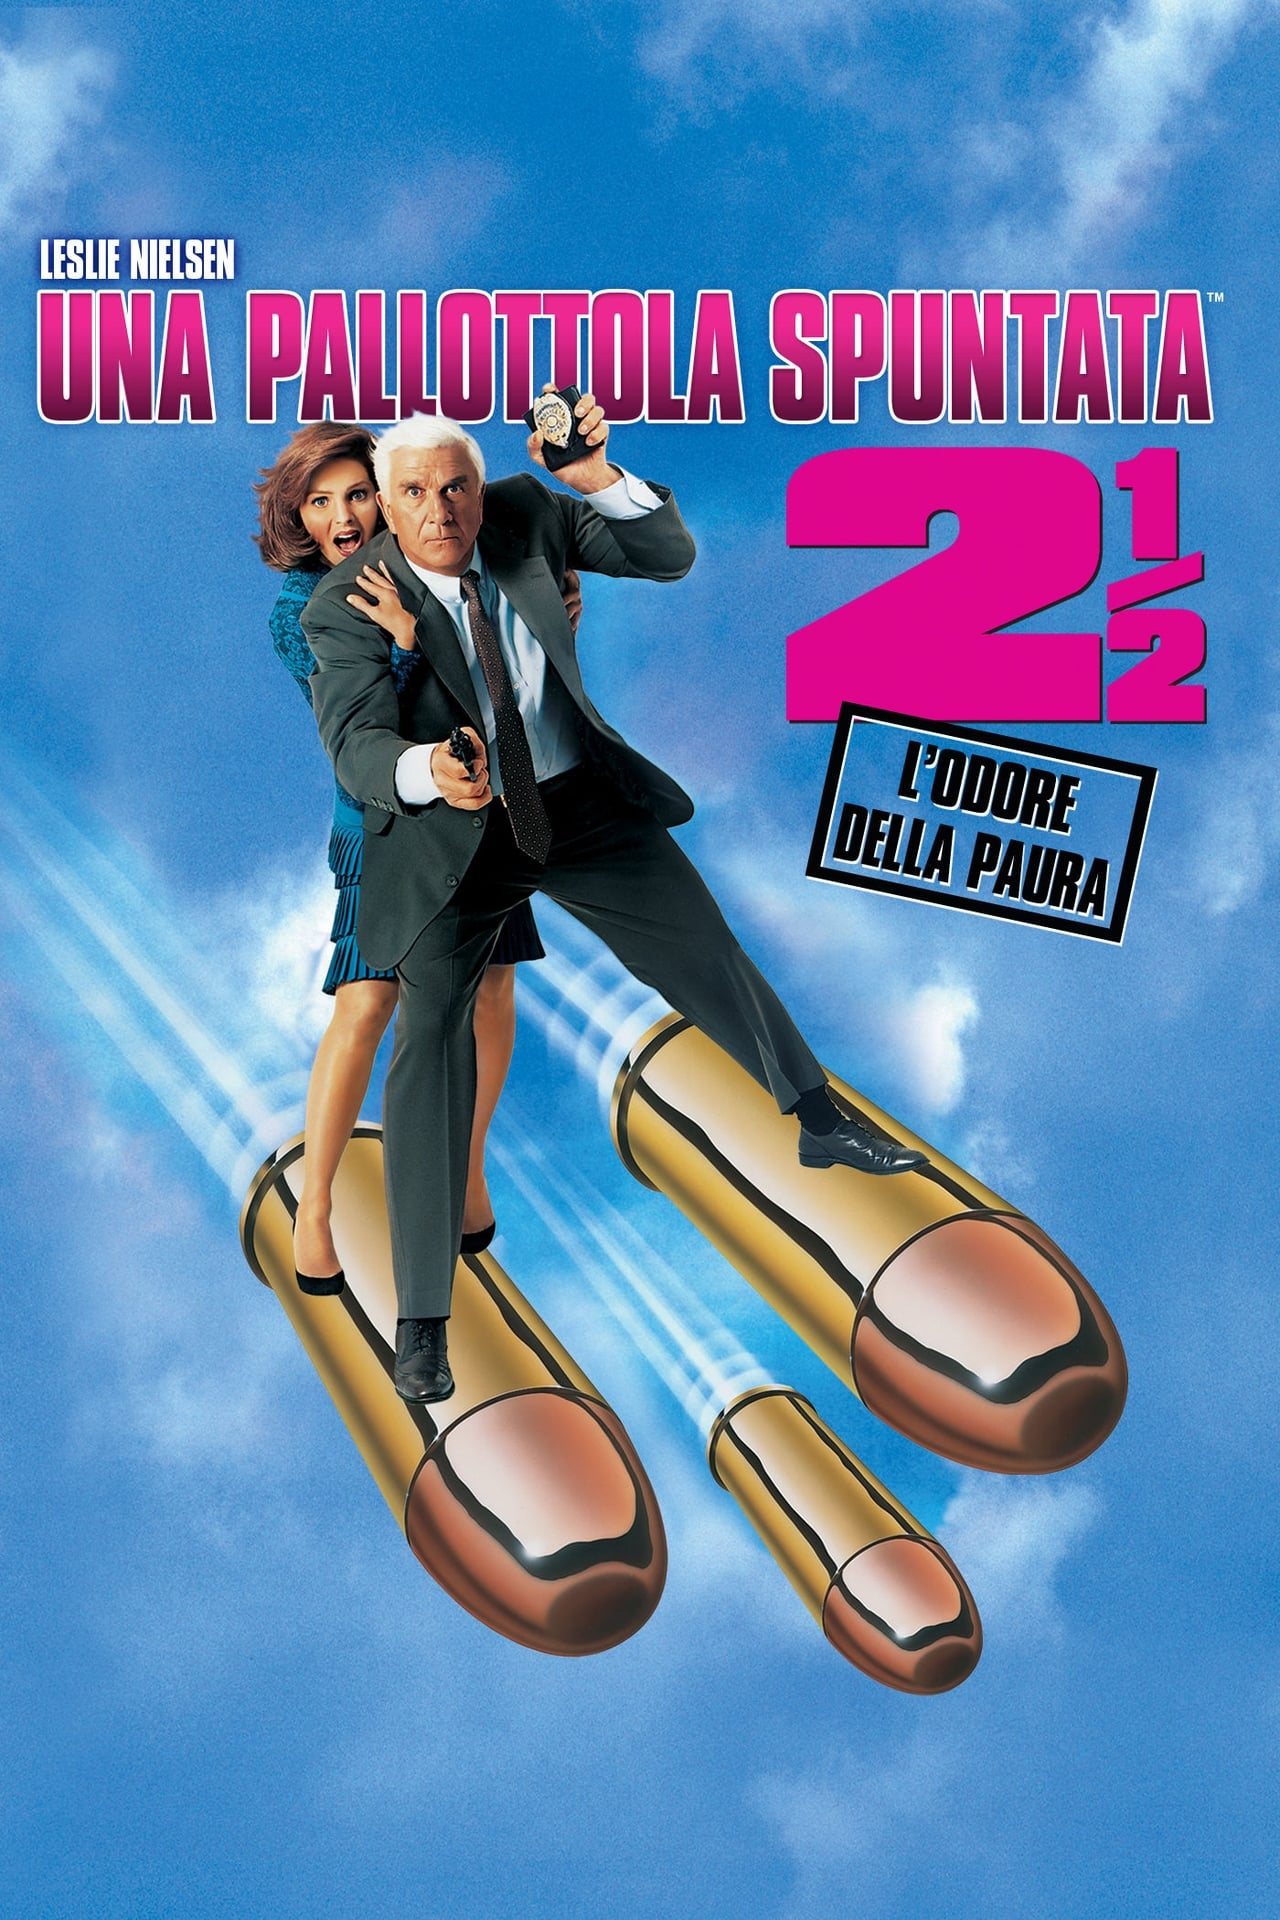 Watch The Naked Gun 2½: The Smell of Fear (1991) Full